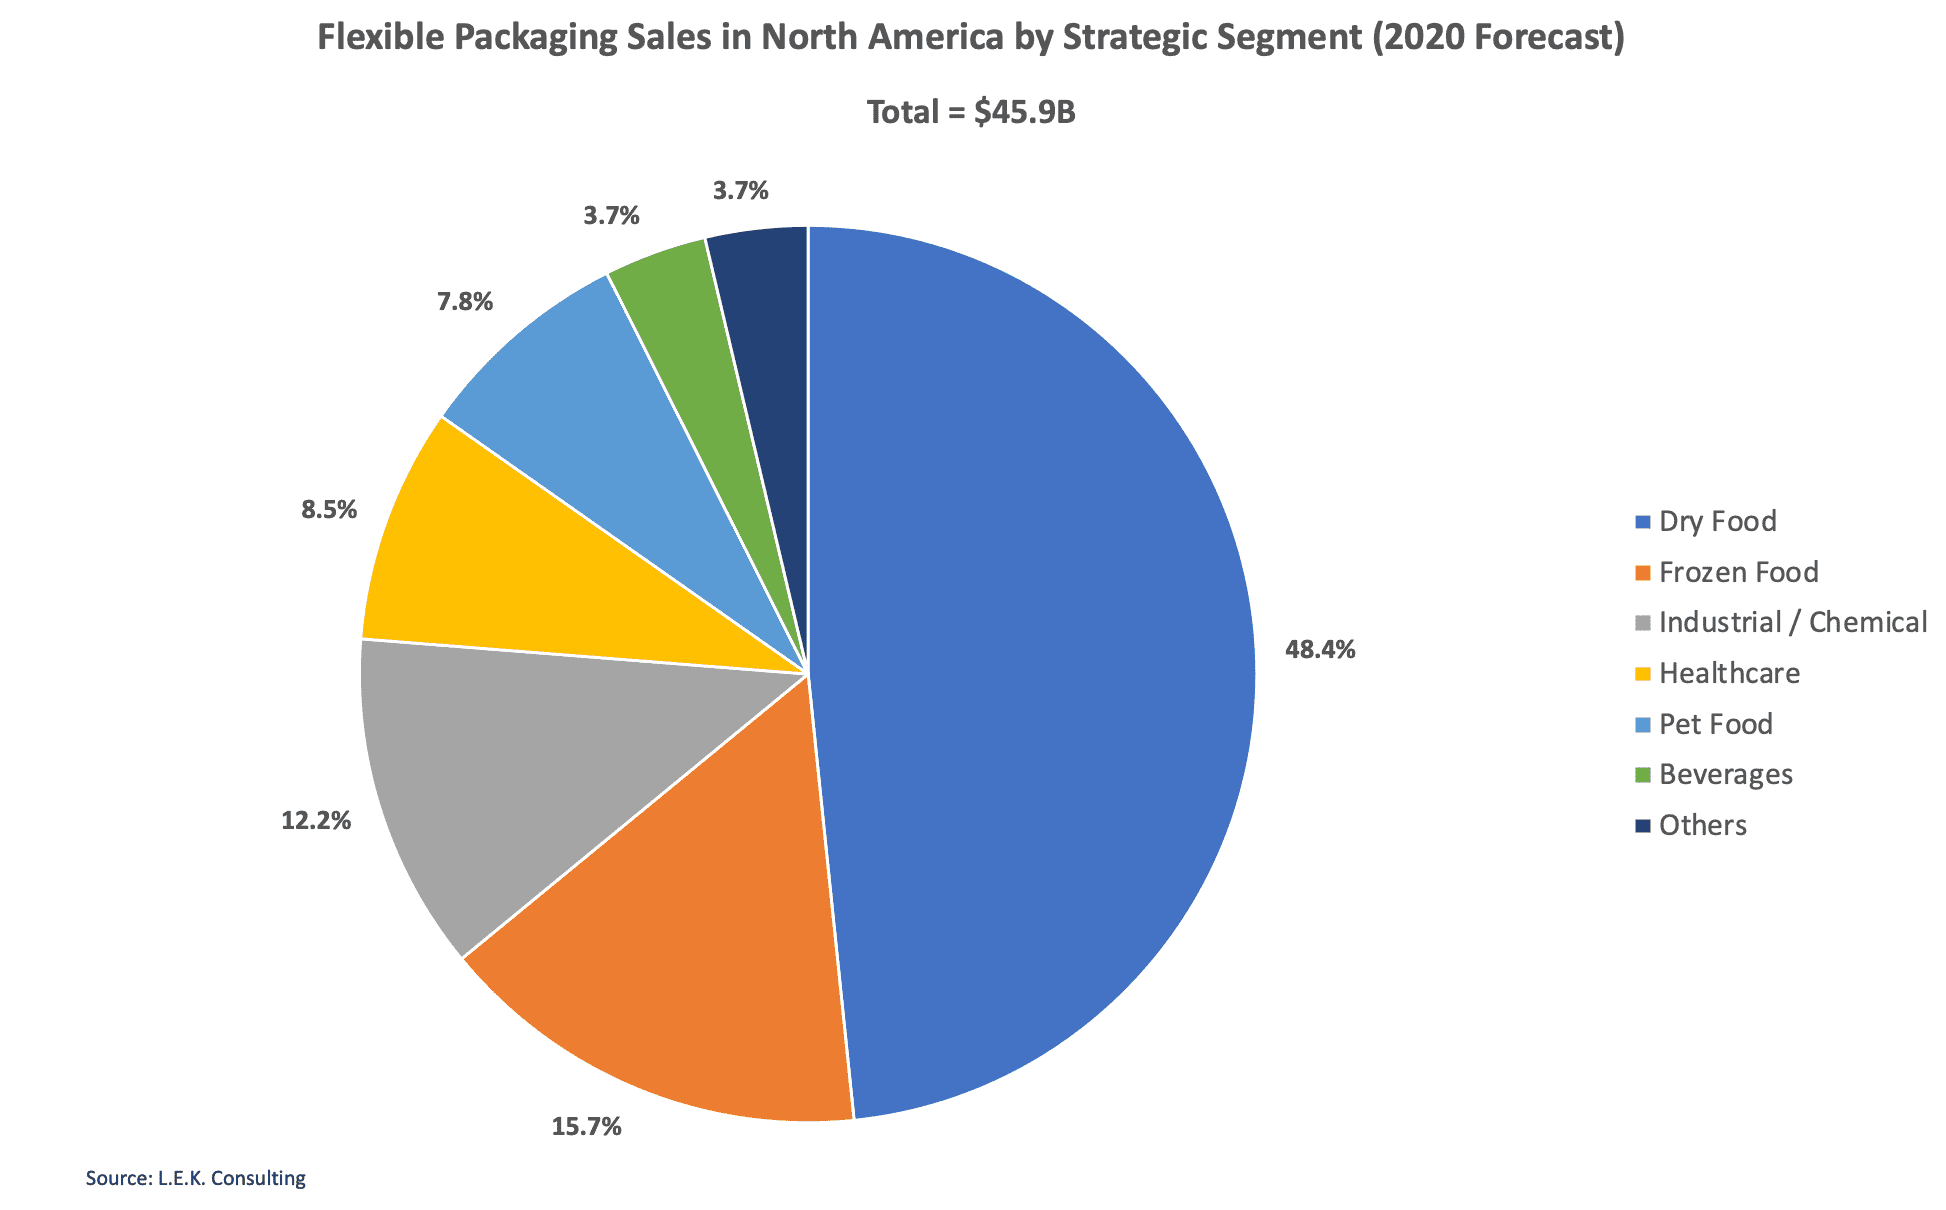 Flexible Packaging Sales Forecast